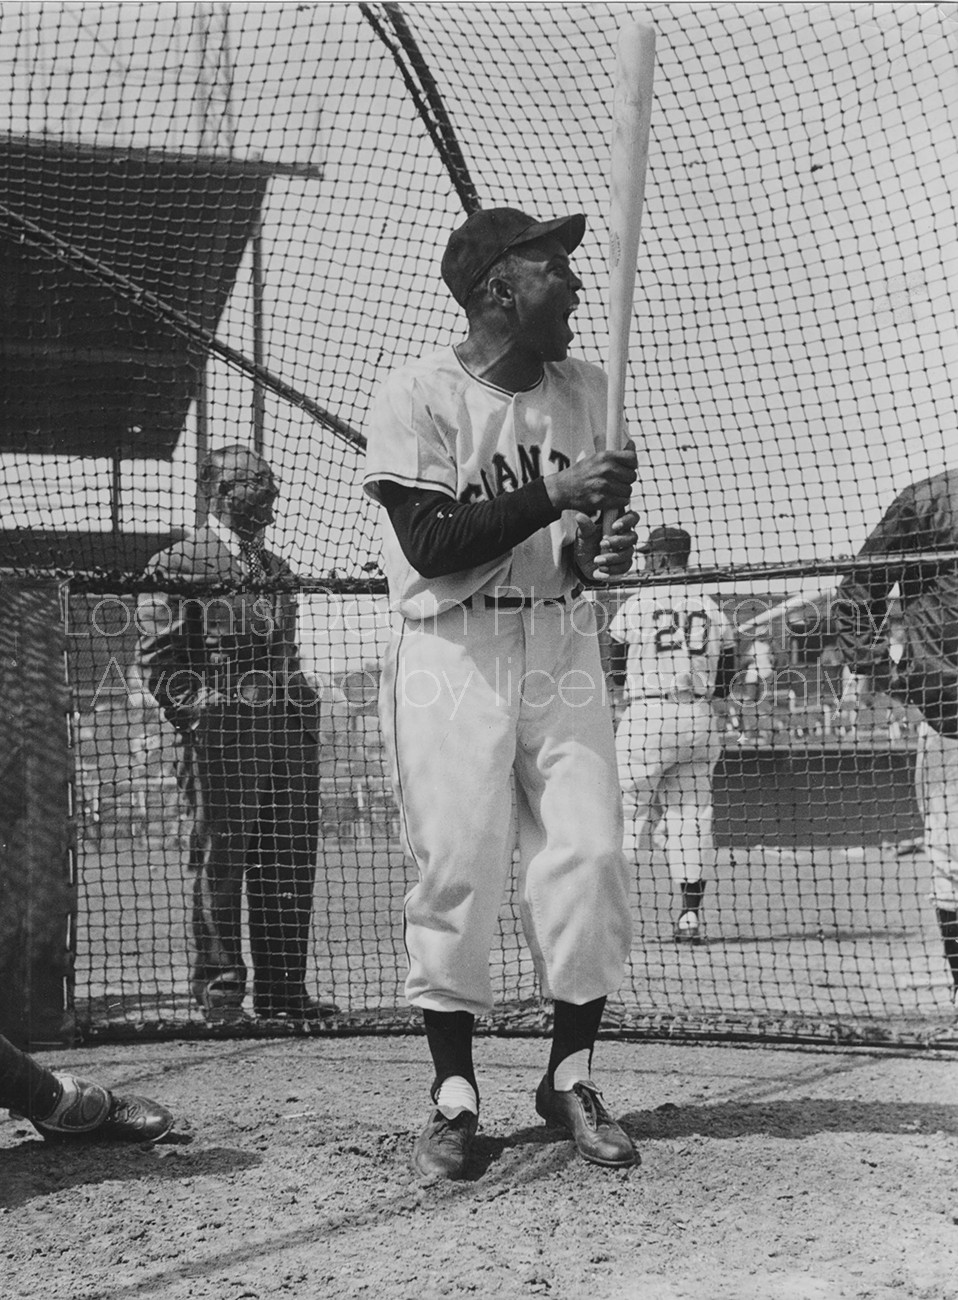 BASEBALL STAR WILLIE MAYS